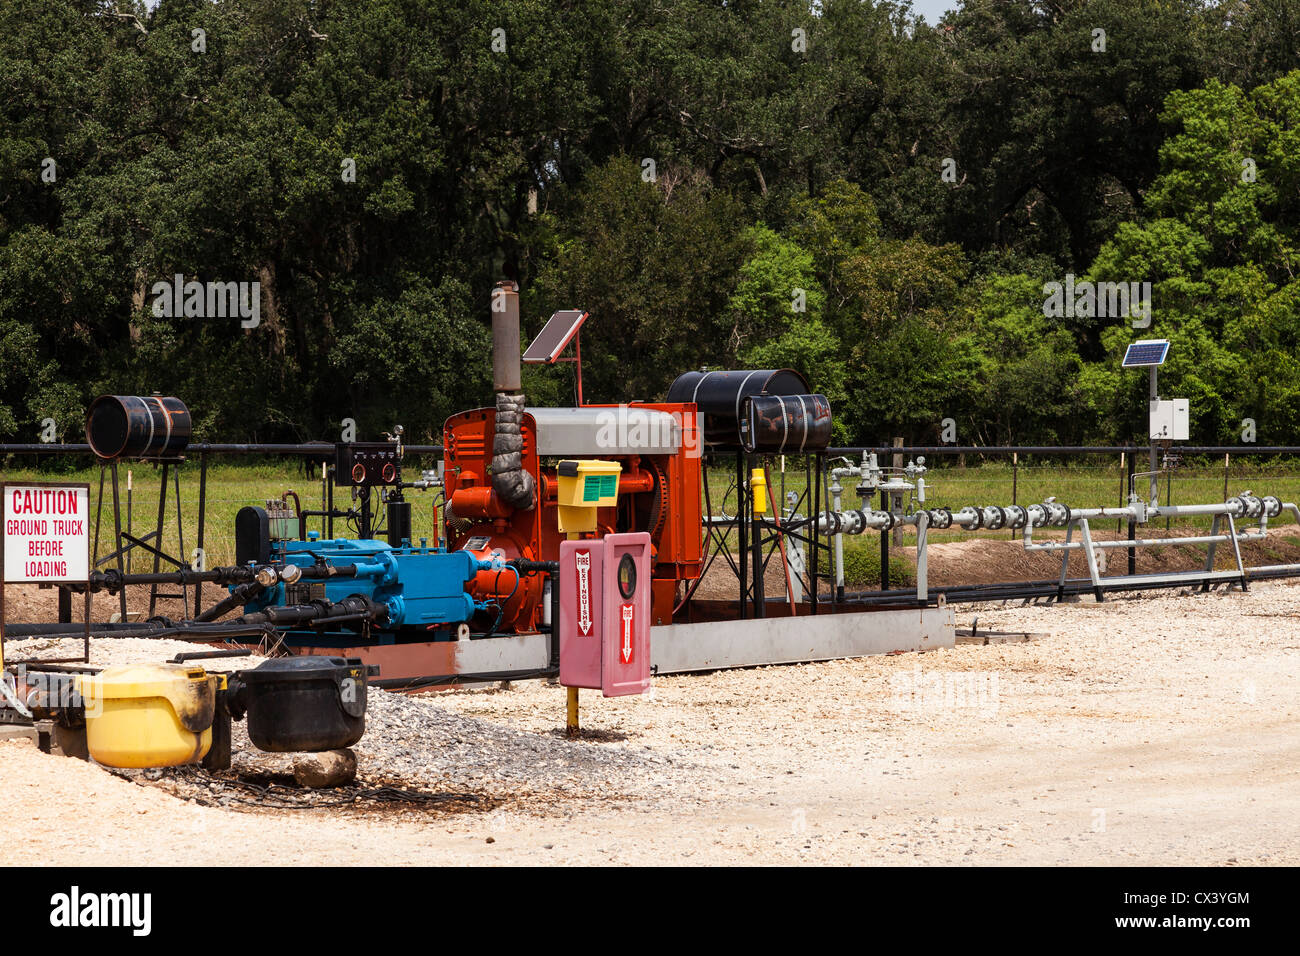 Pumping system for loading trucks at a remote crude oil well site. - Stock Image